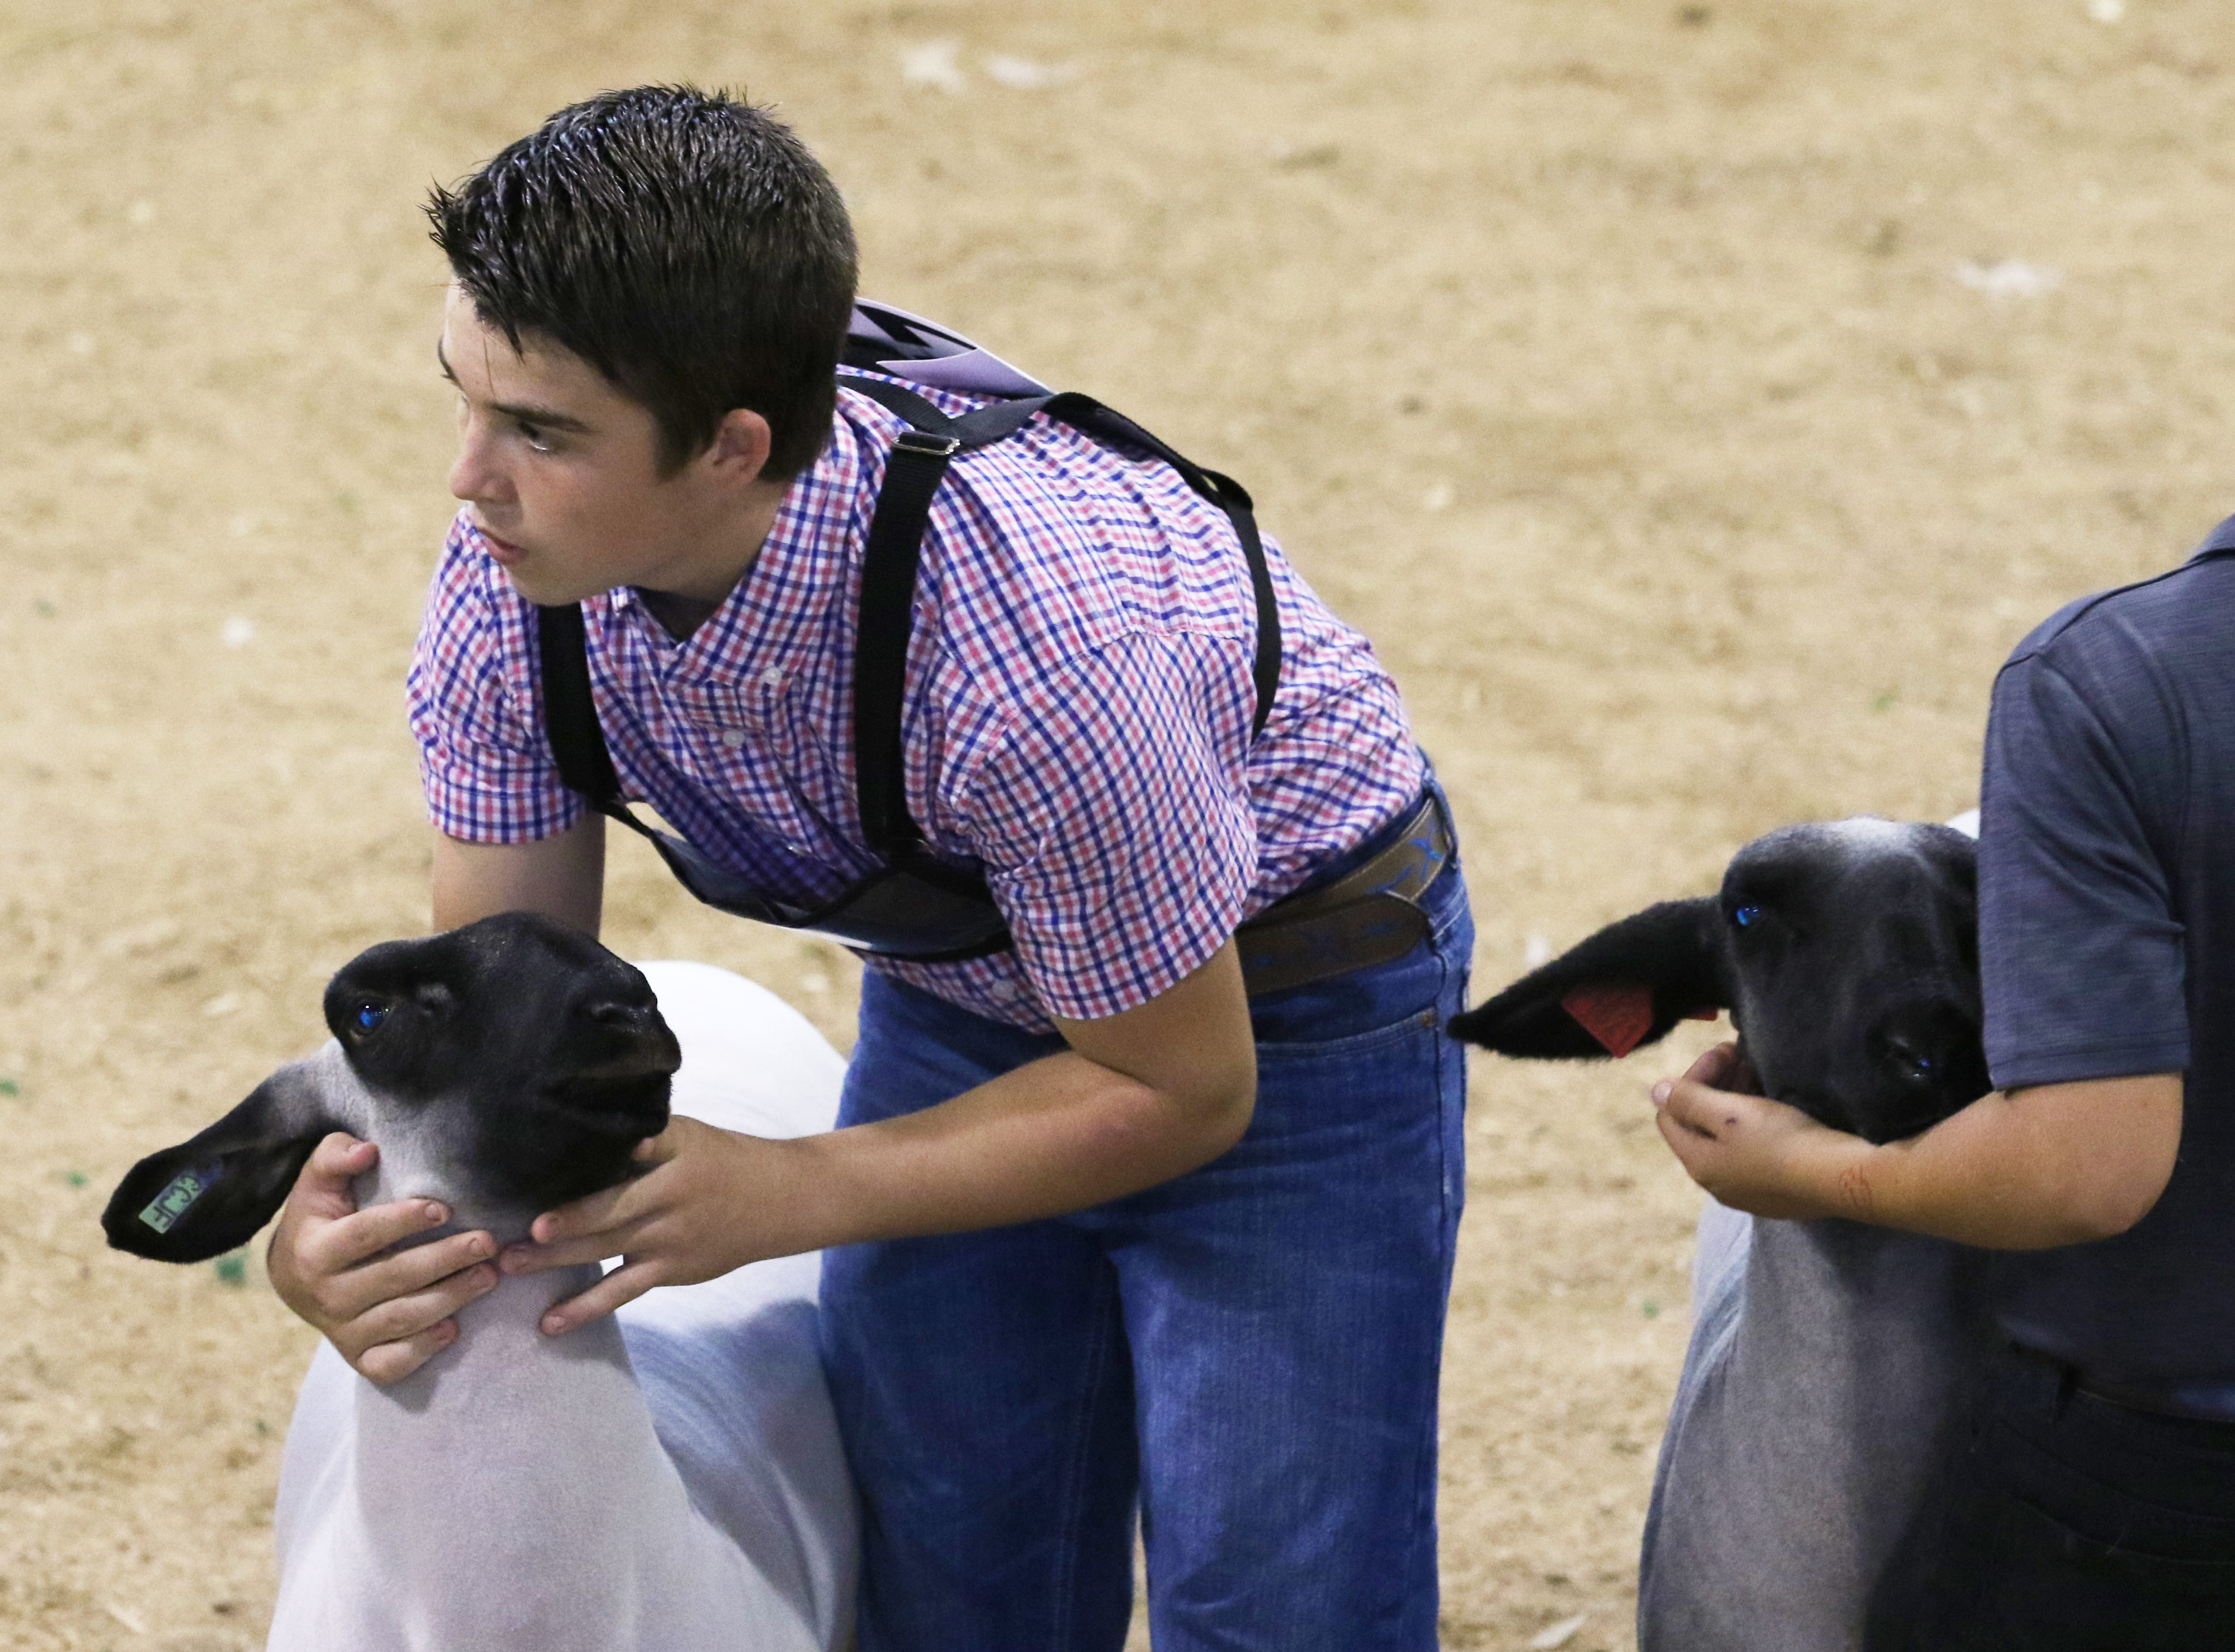 J.D. Herron shows a lamb during the Showman of Showmen at the Coshocton County Fair on Wednesday.